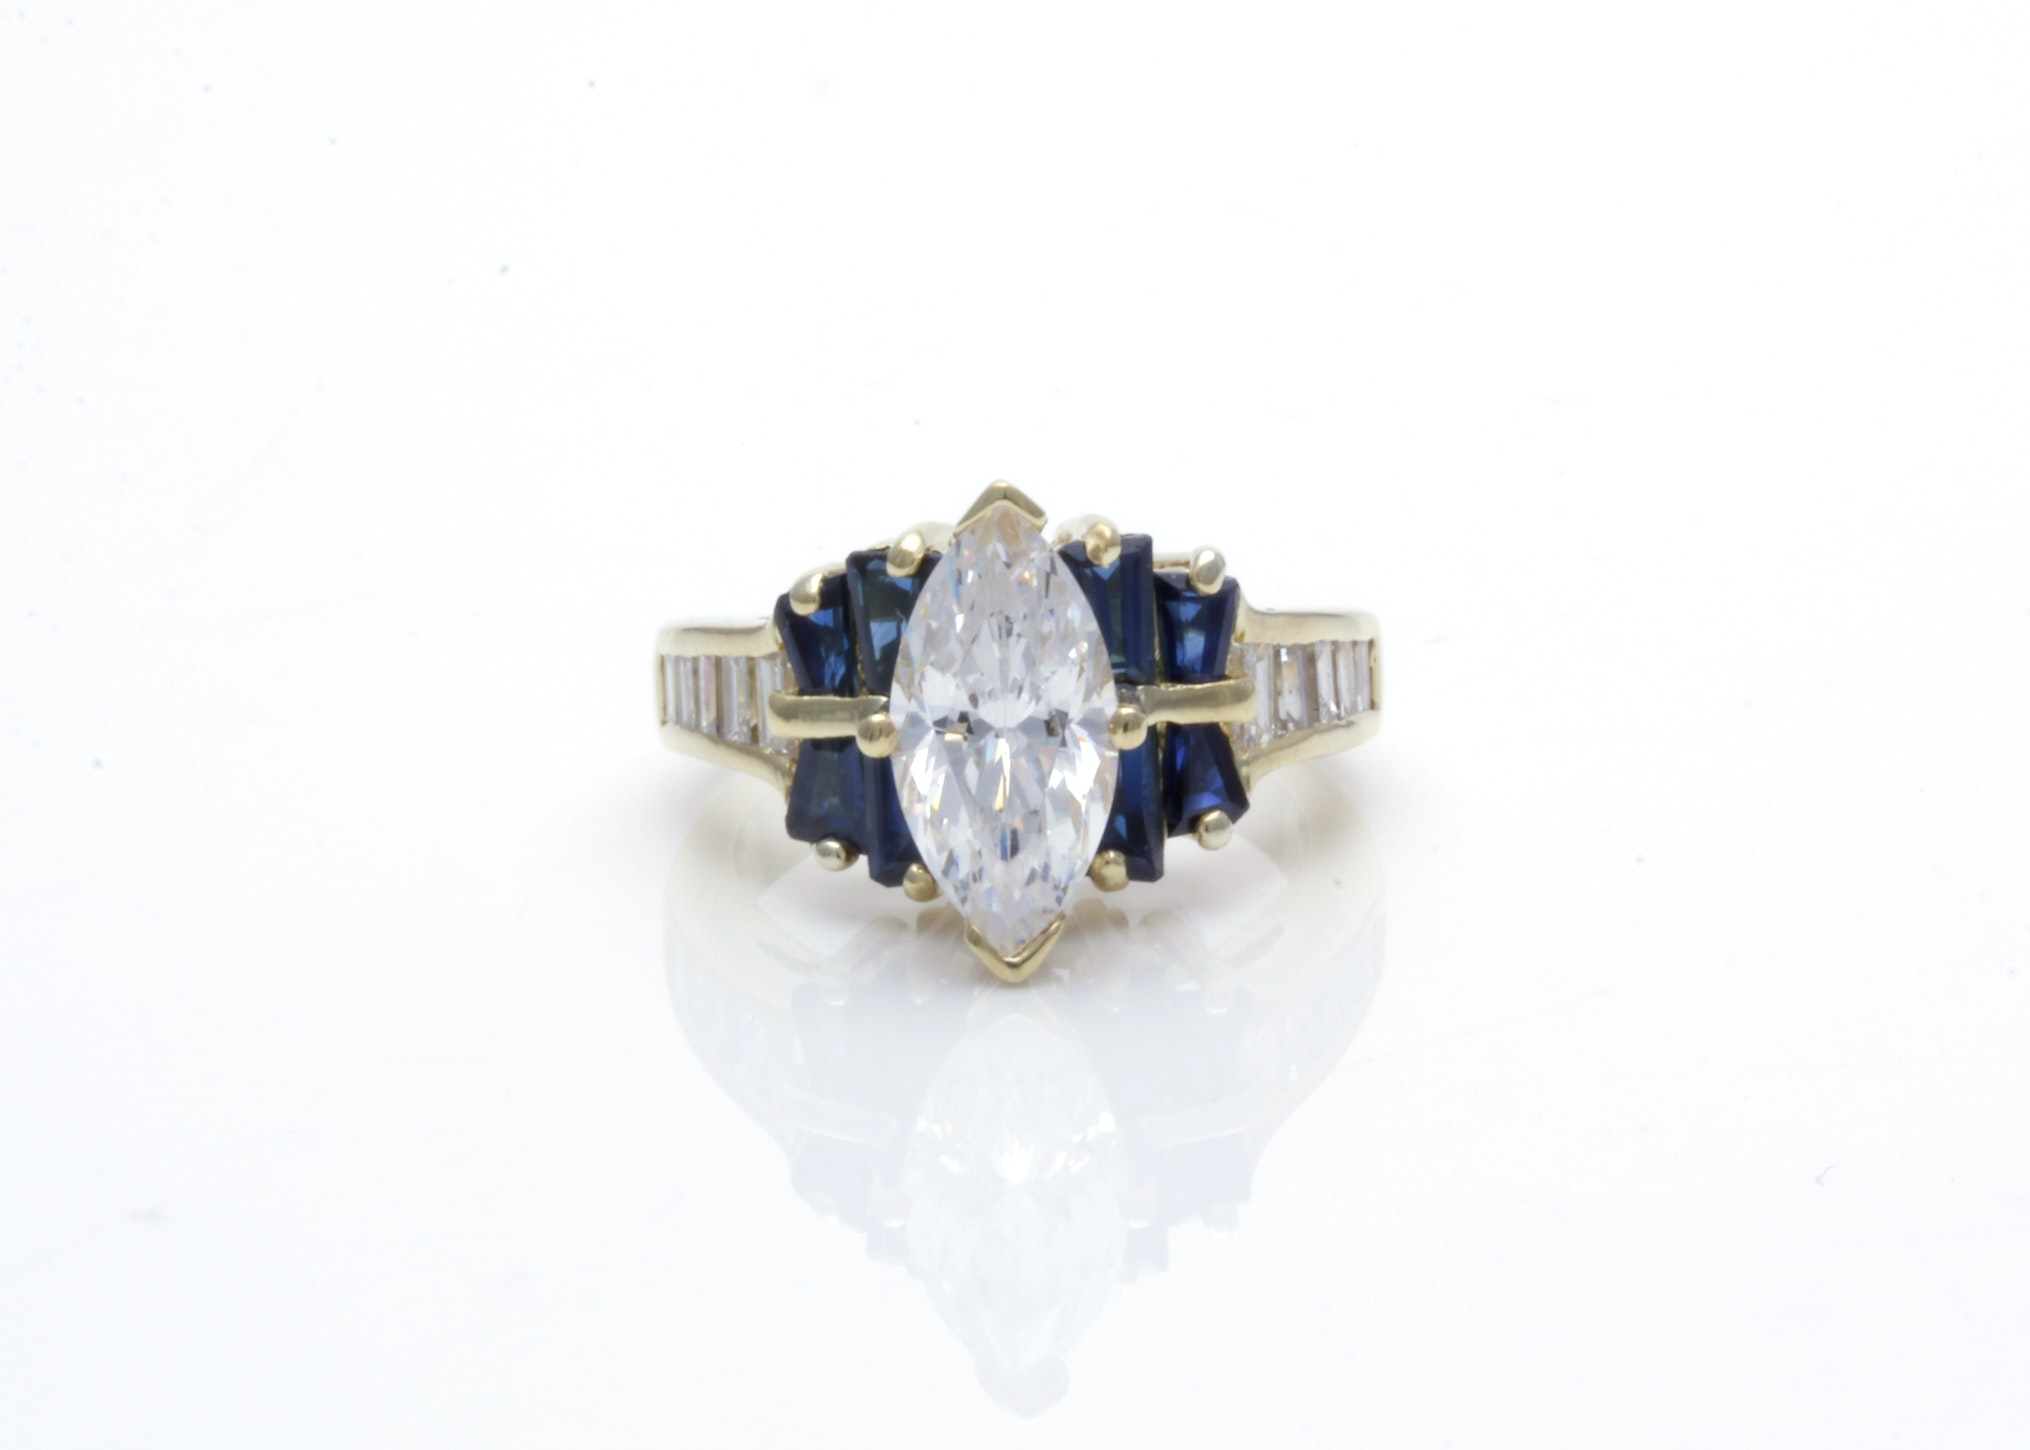 18K Yellow Gold Sapphire and Diamond Ring with Cubic Zirconia Center